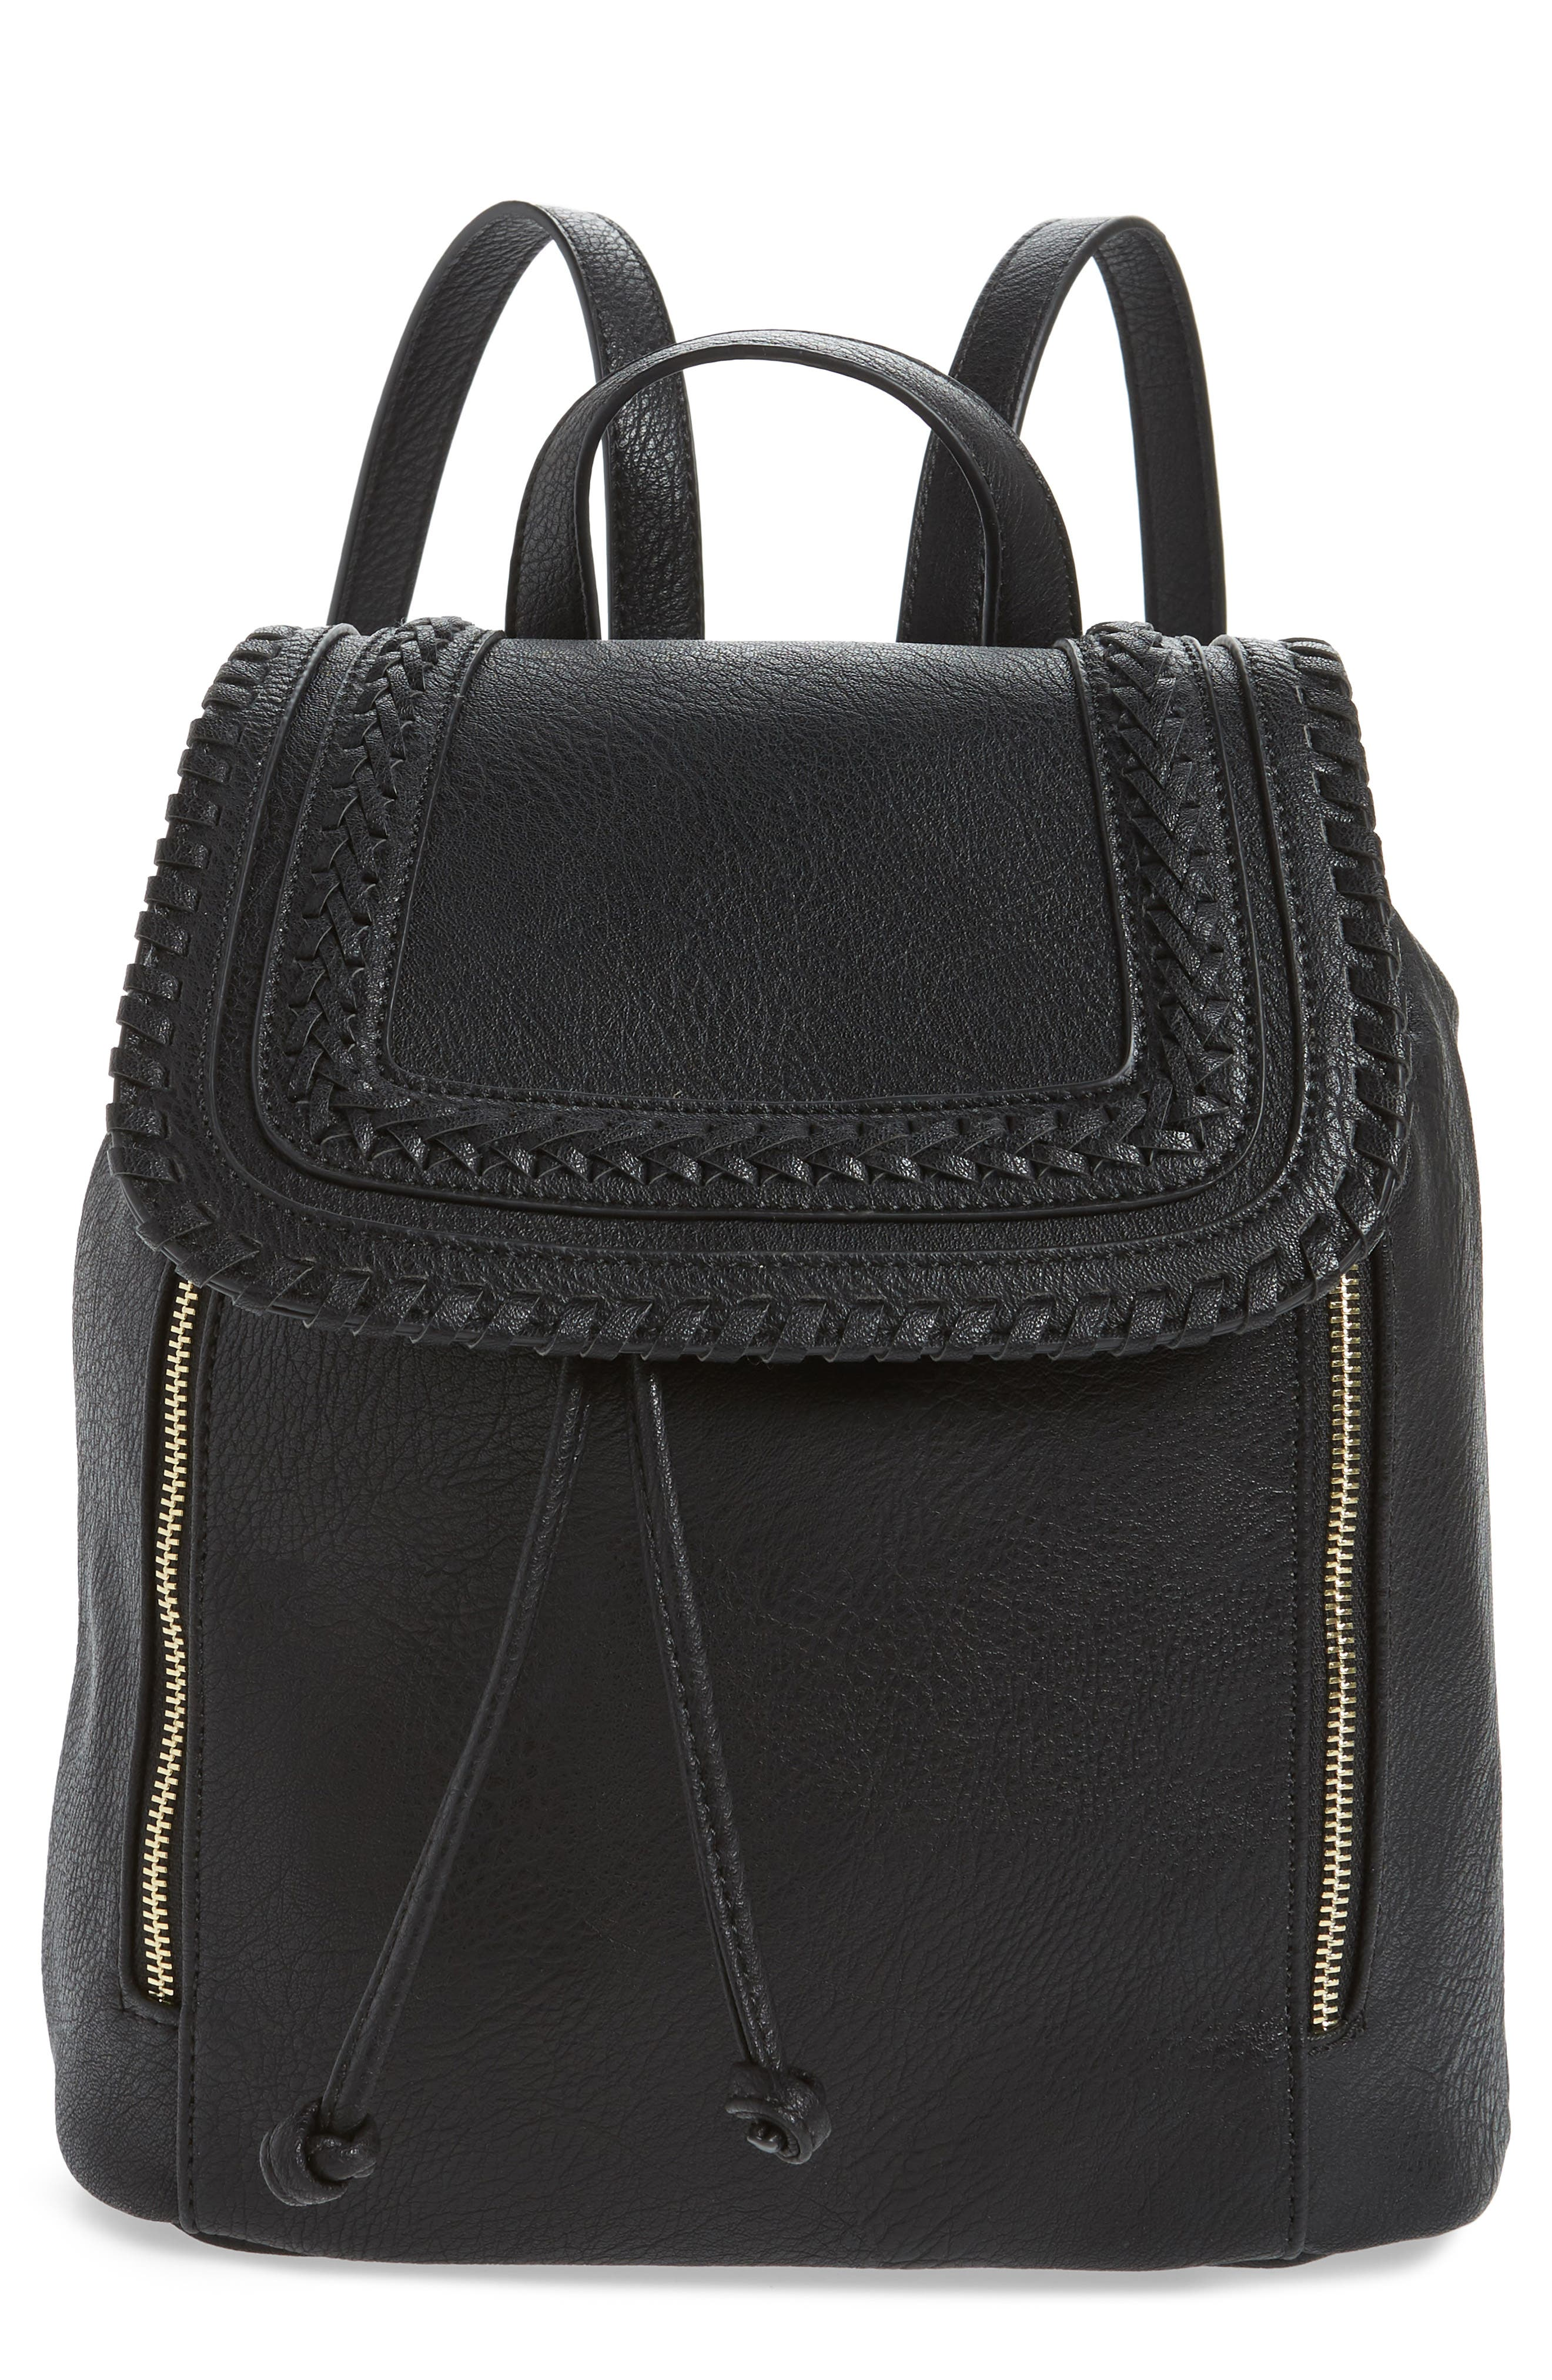 SOLE SOCIETY Destin Faux Leather Backpack, Main, color, BLACK